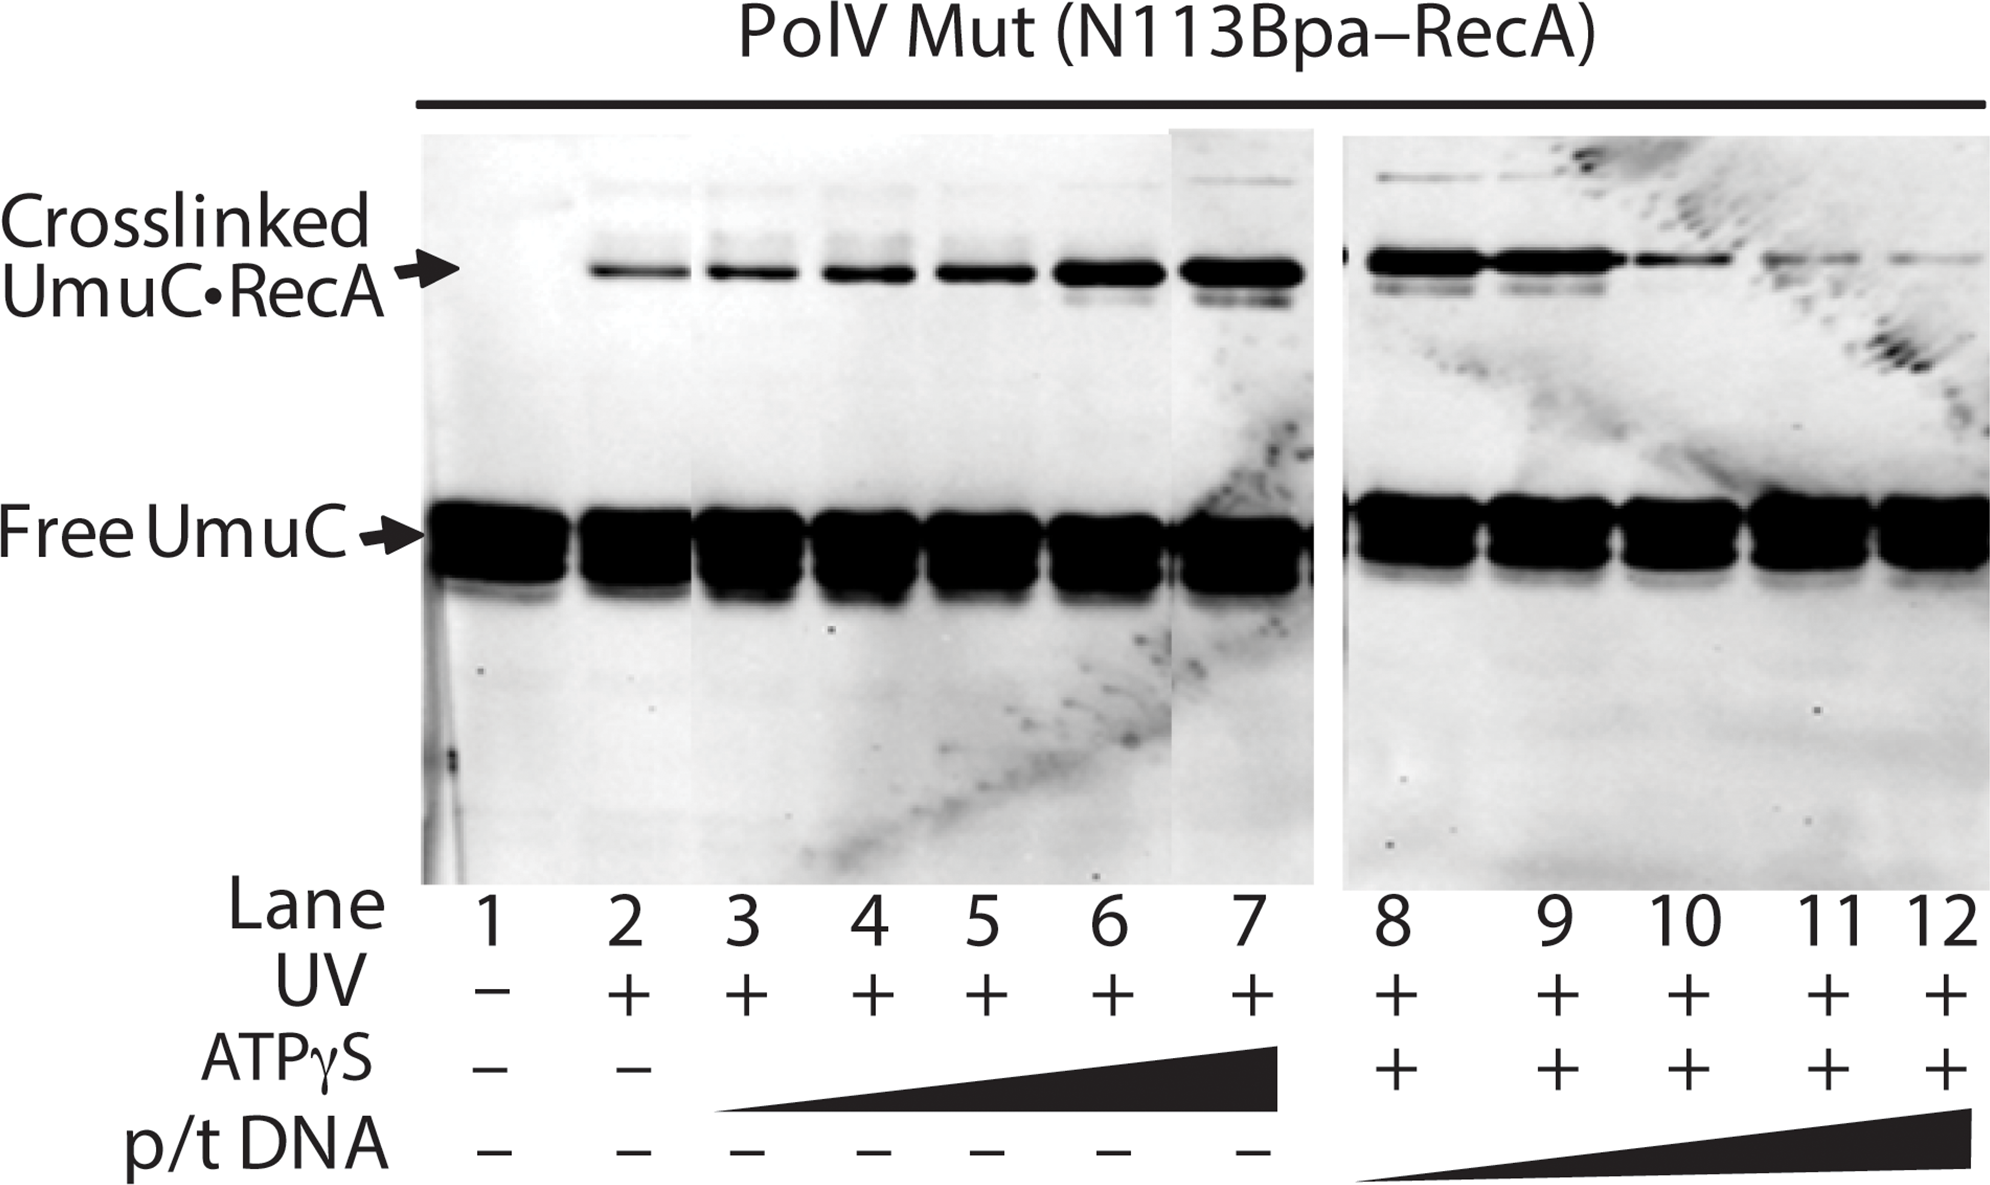 Effects of ATP and primer-template binding on RecA-UmuC cross-linking efficiency in pol V Mut.